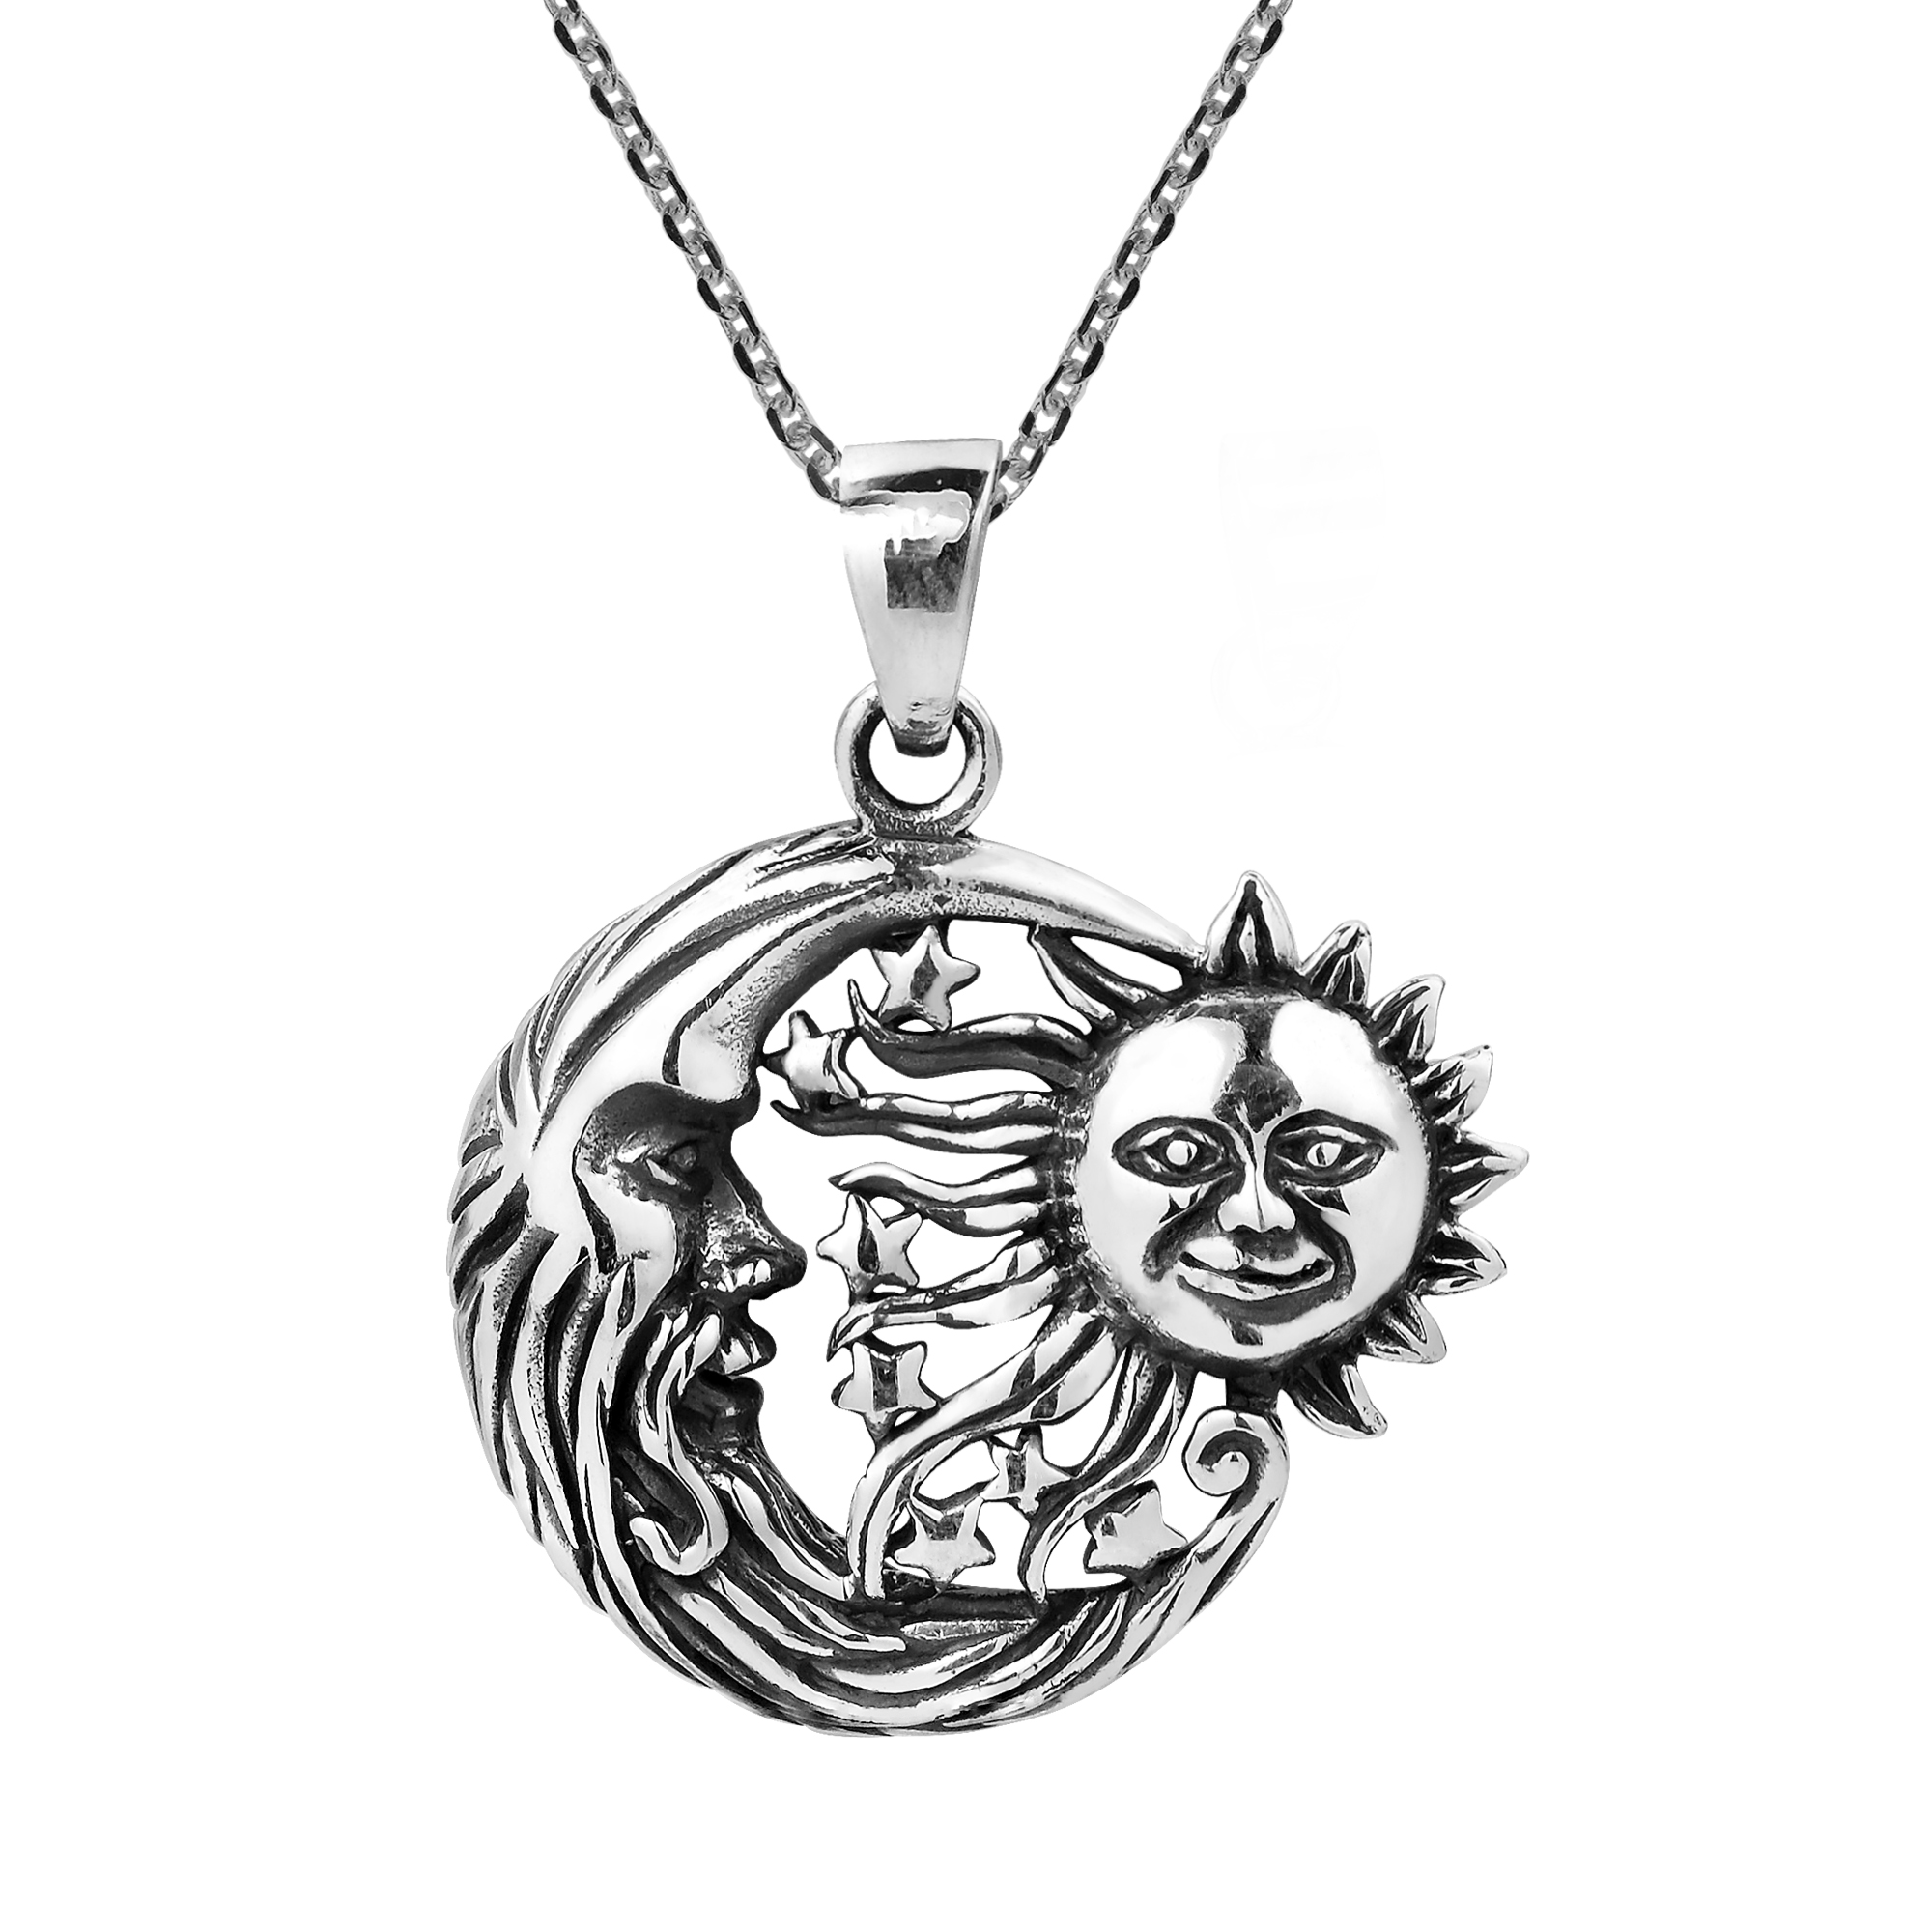 mystic crystal collection sun meg stars necklace jands moon jewellery